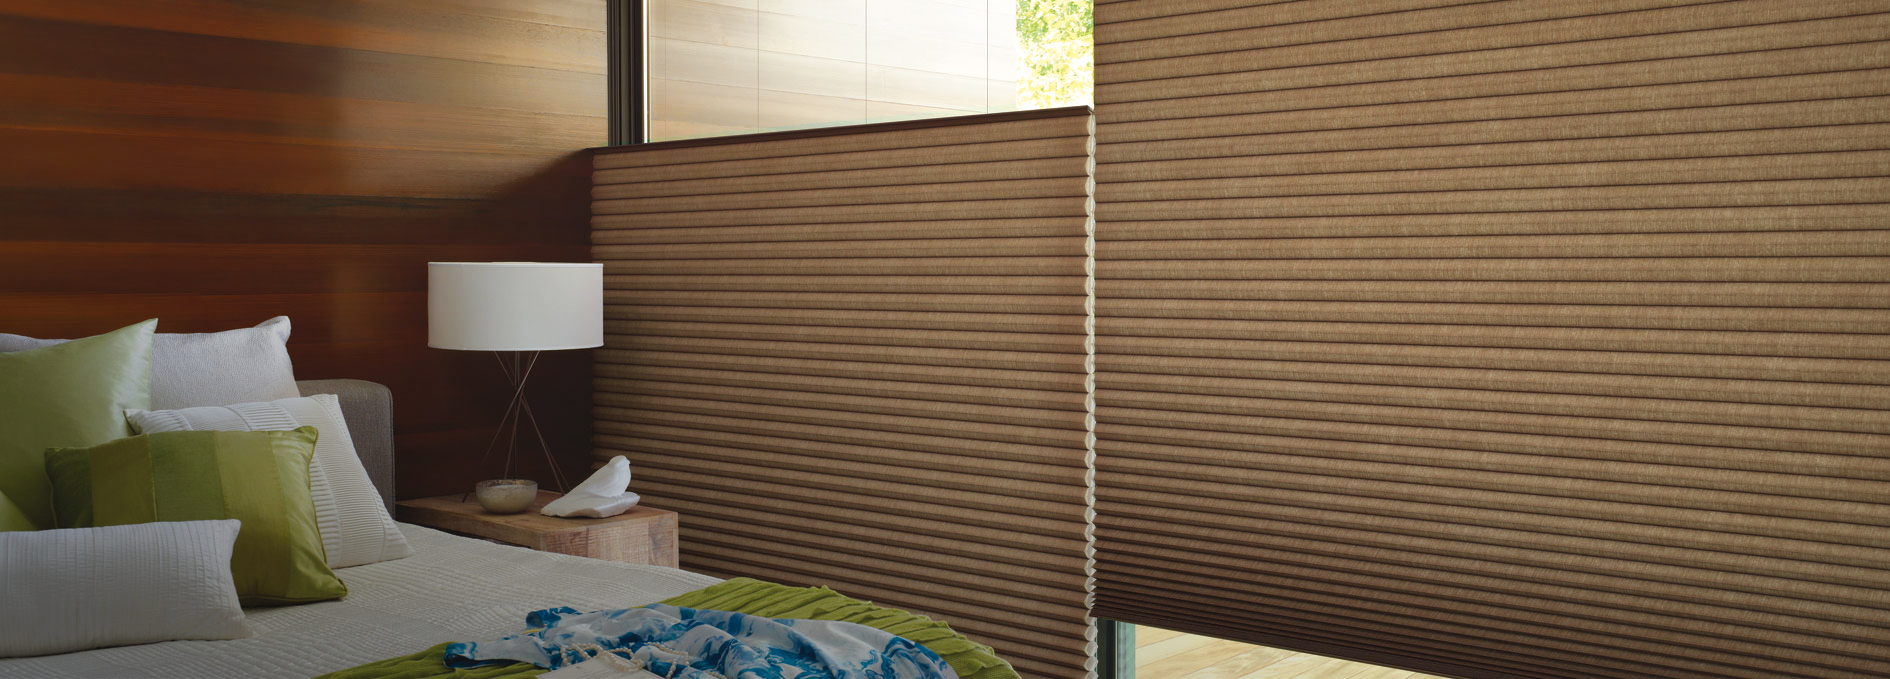 Hunter Douglas The Alustra Collection Of Duette Architella Honeycomb Shades